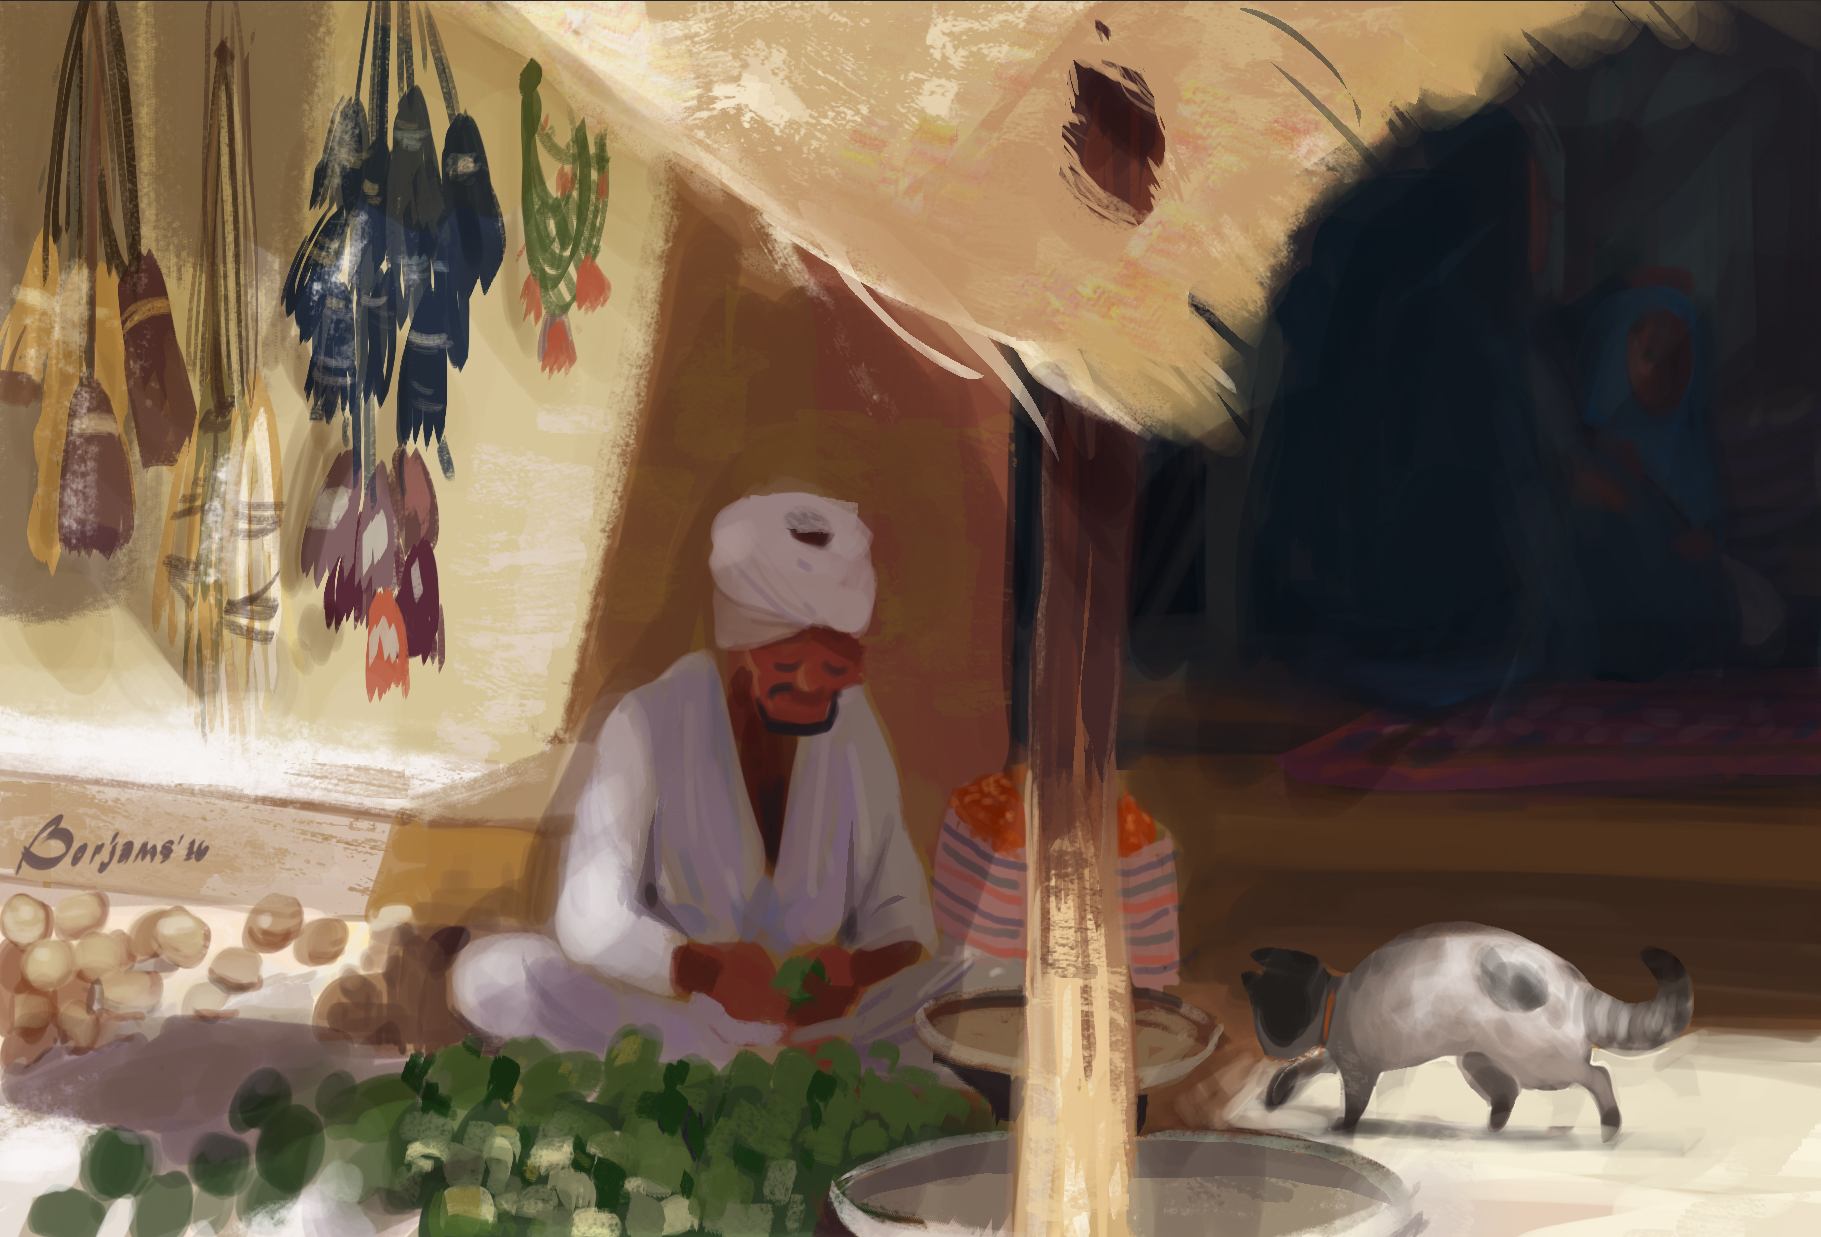 07-19-16 speedpaint egyptian seller with cat.jpg